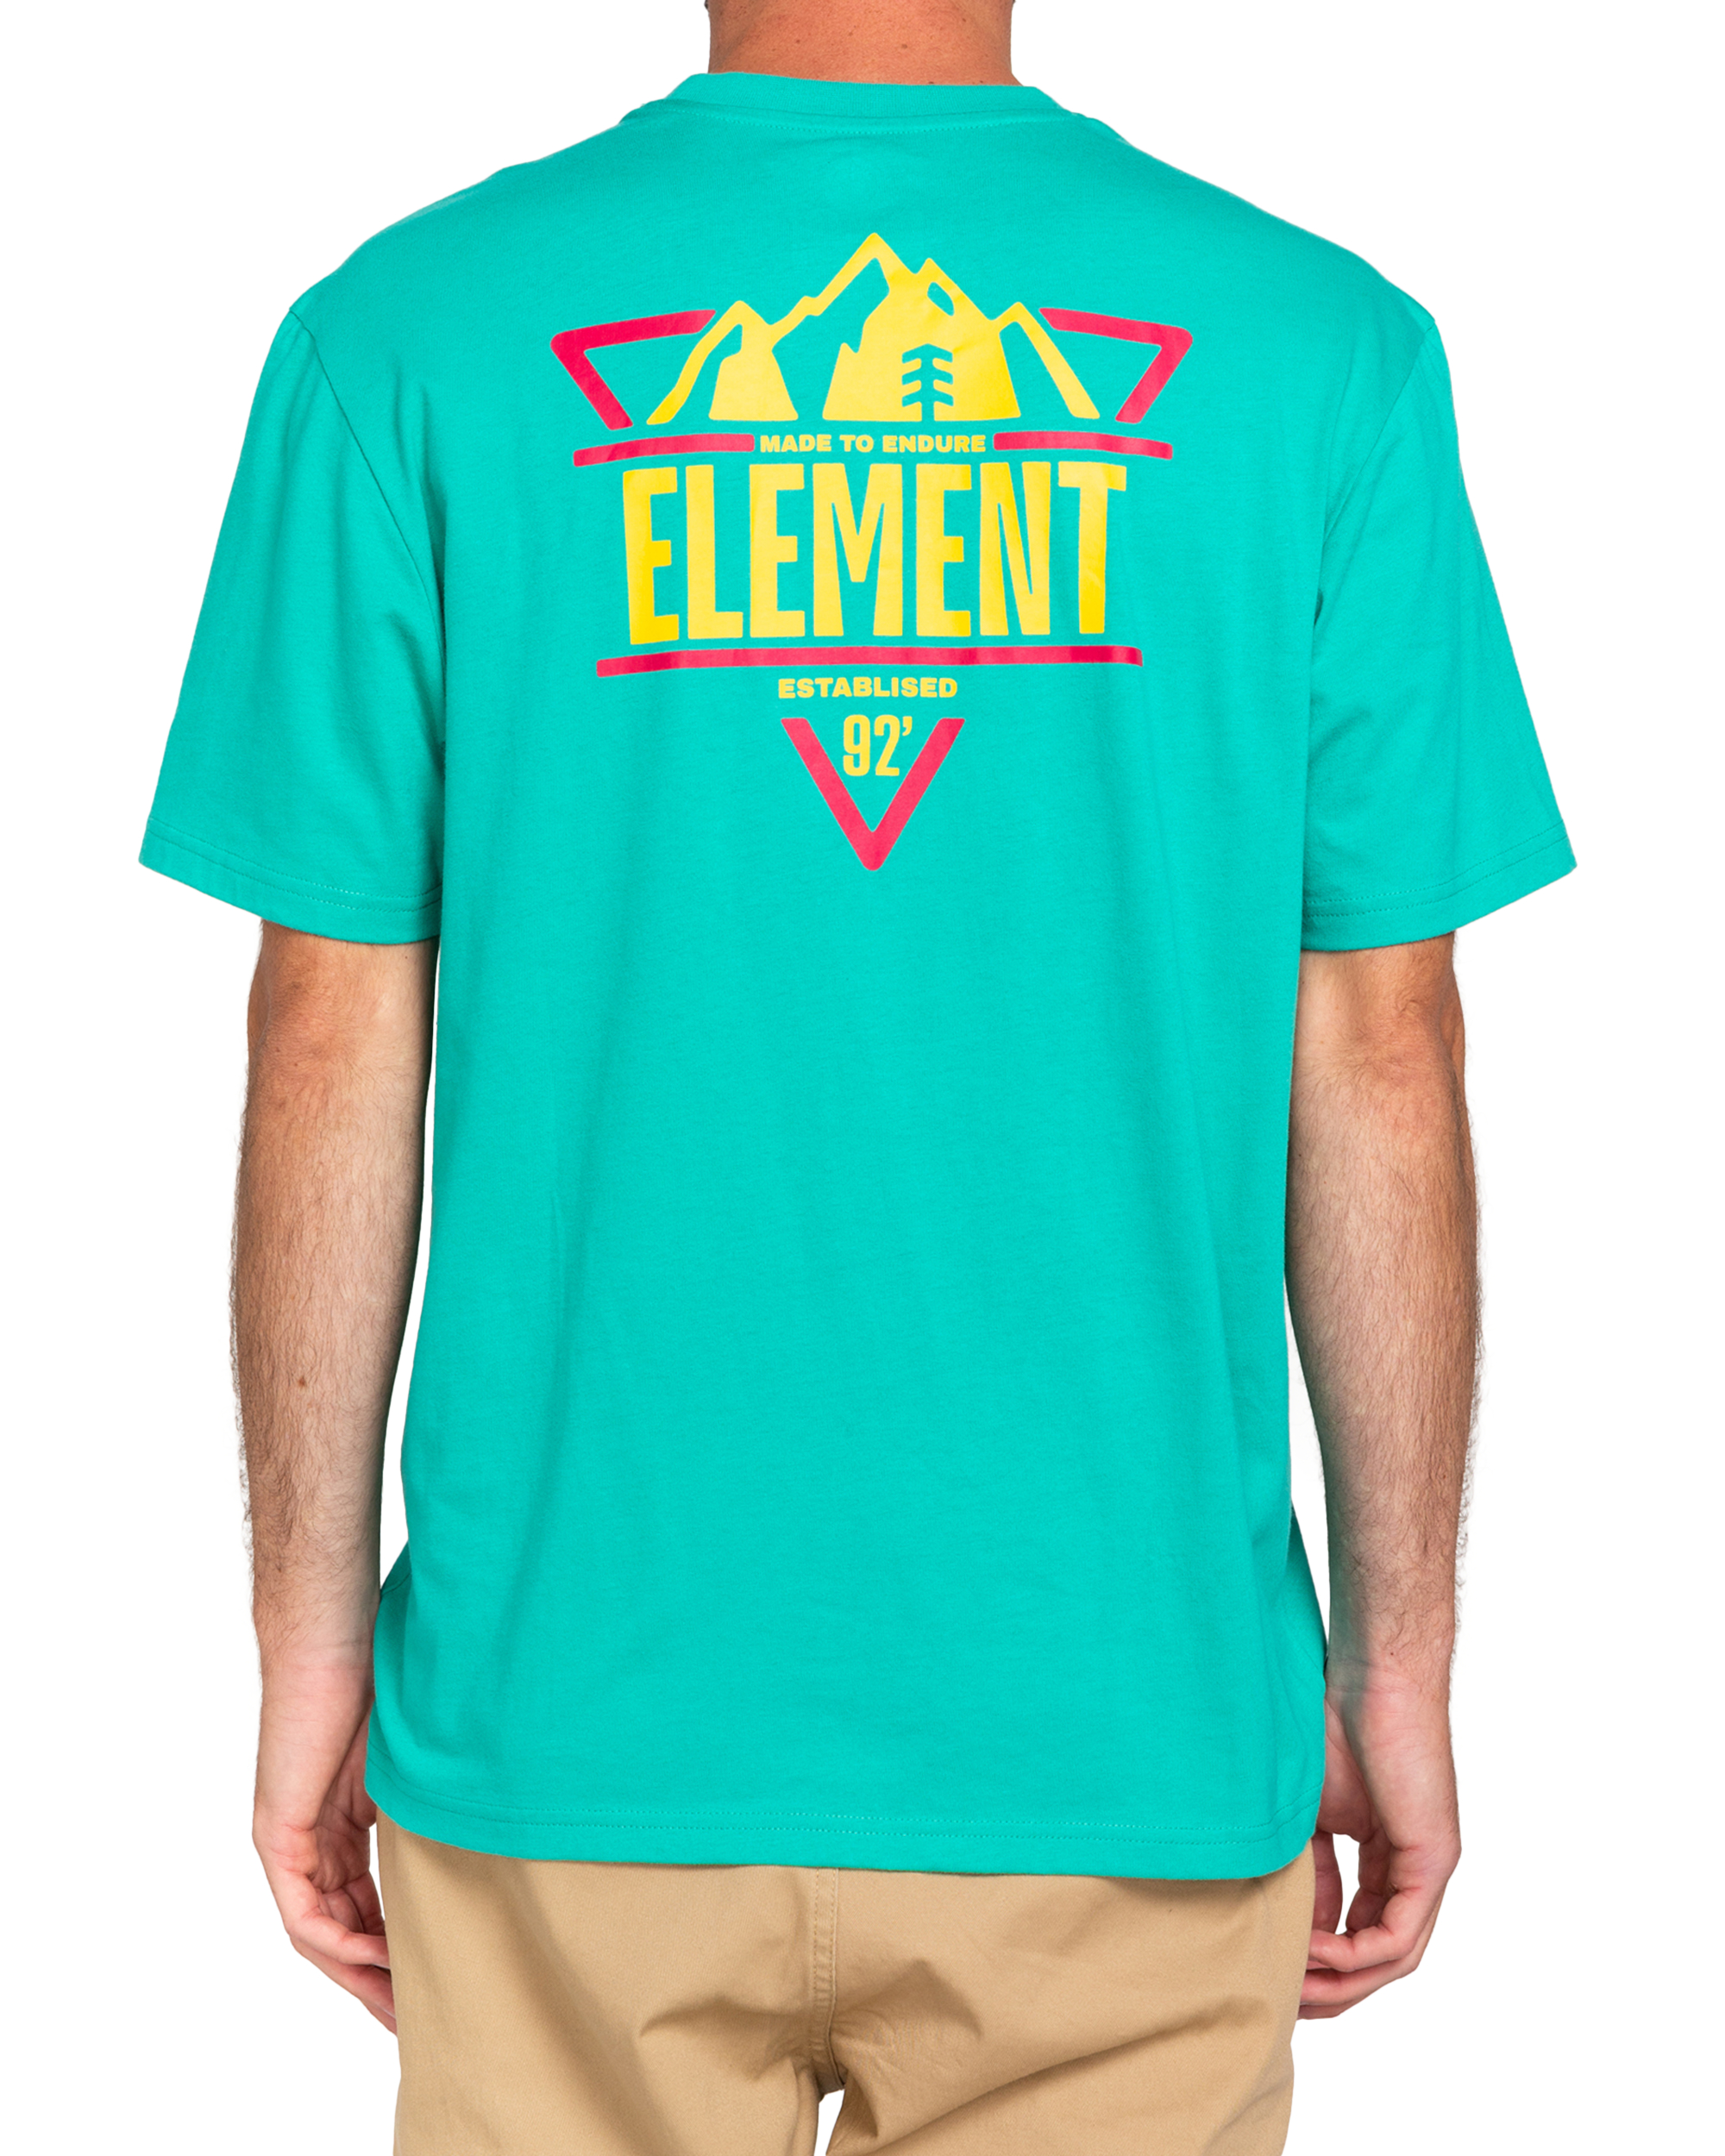 Elemant Grizzard t-shirt, green, x-small